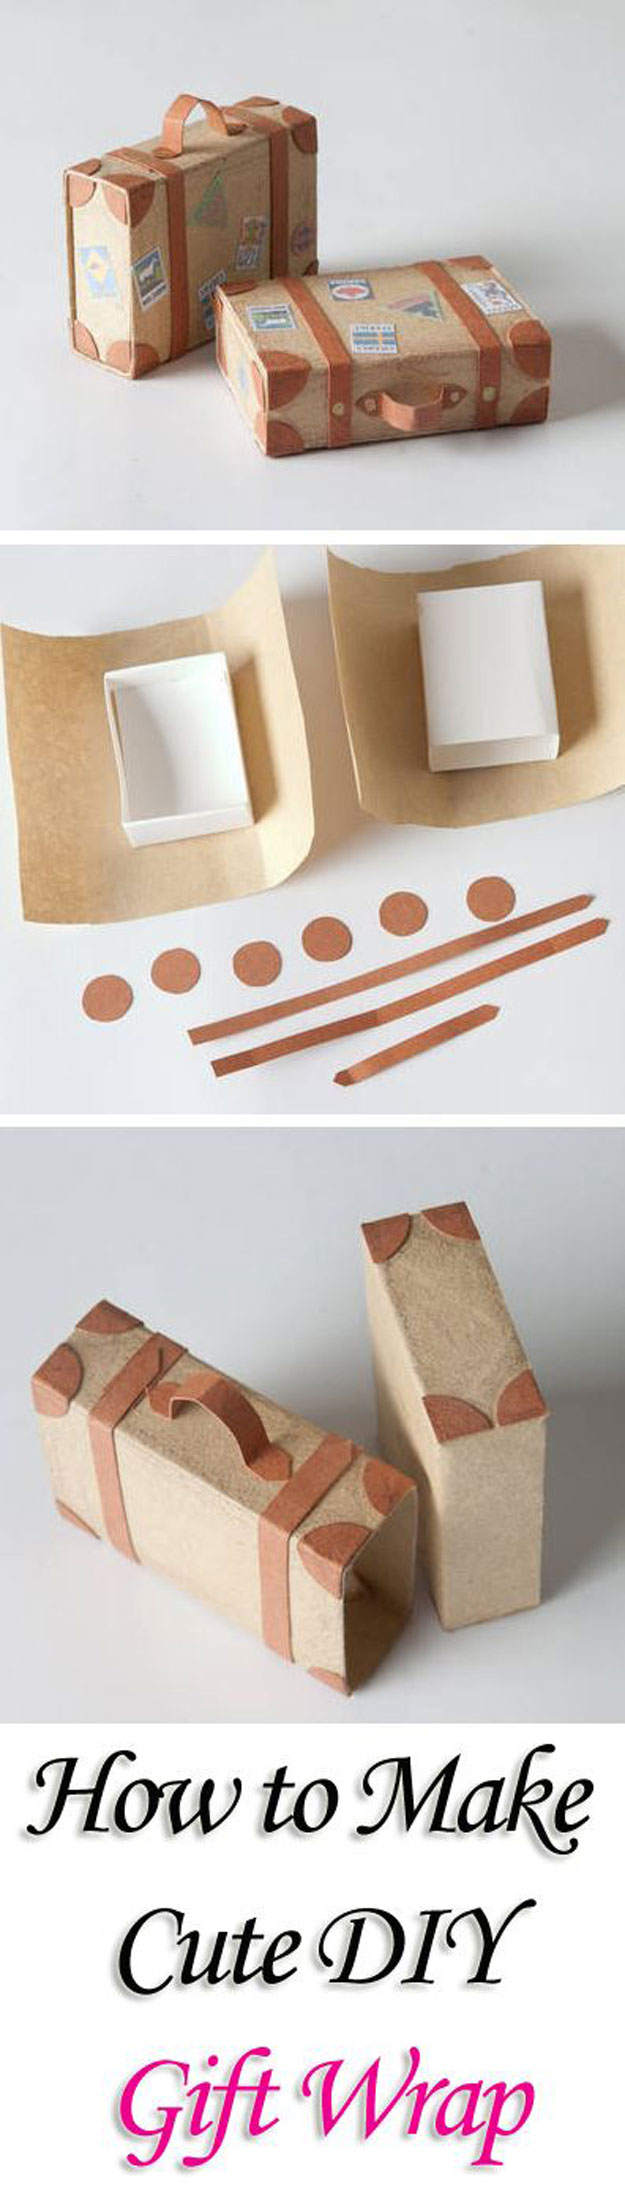 52 insanely clever gift wrapping ideas you 39 ll love for How to wrap presents with wrapping paper